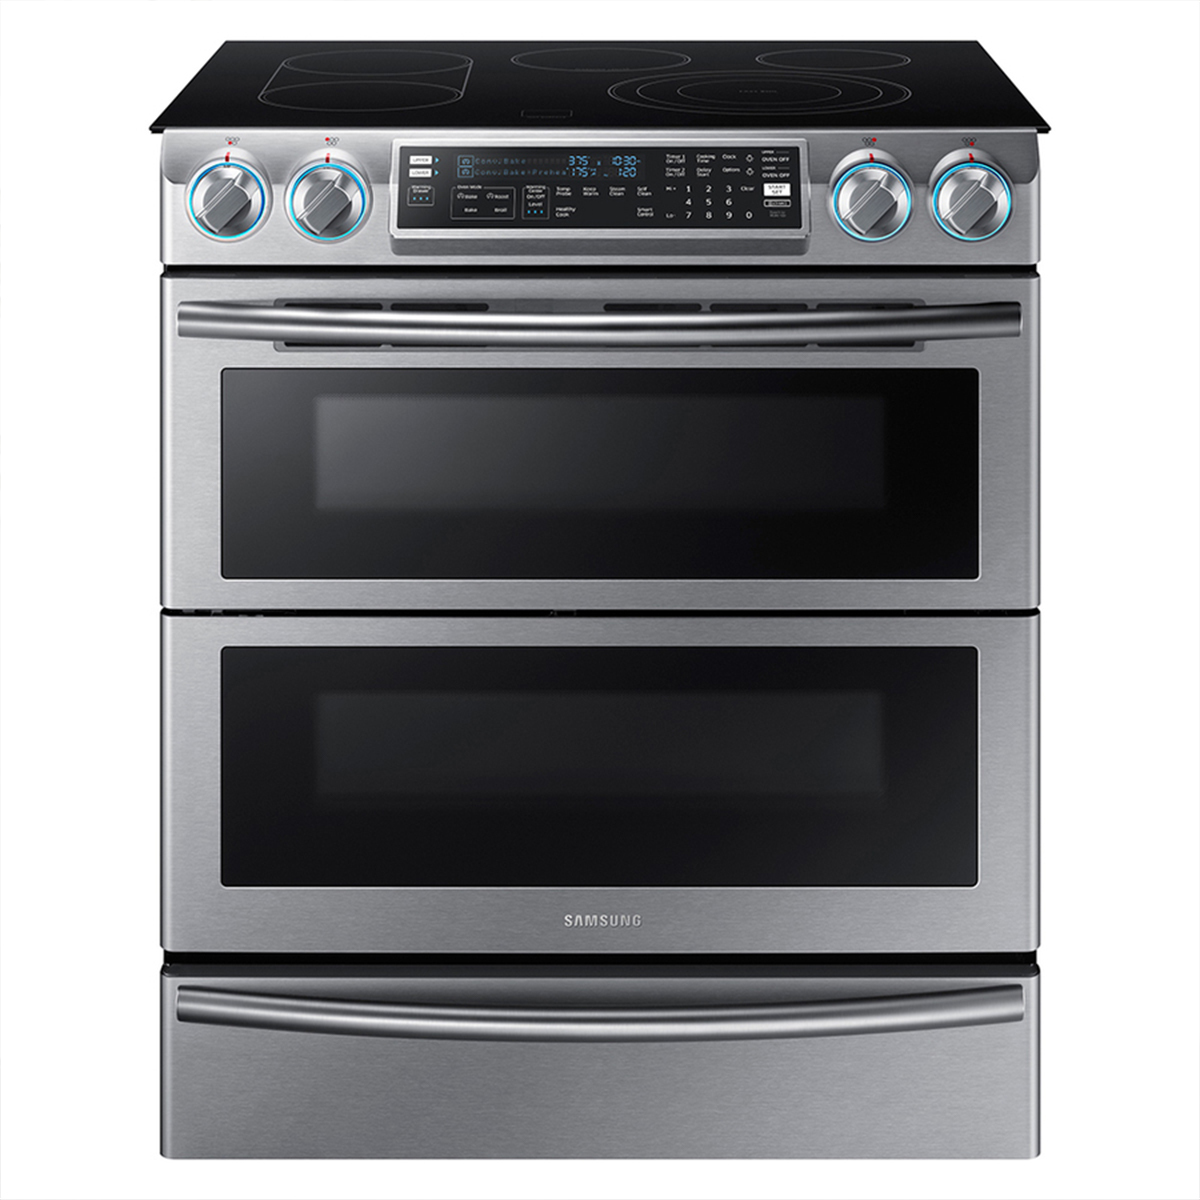 Samsung double oven with smartphone compatibility photo